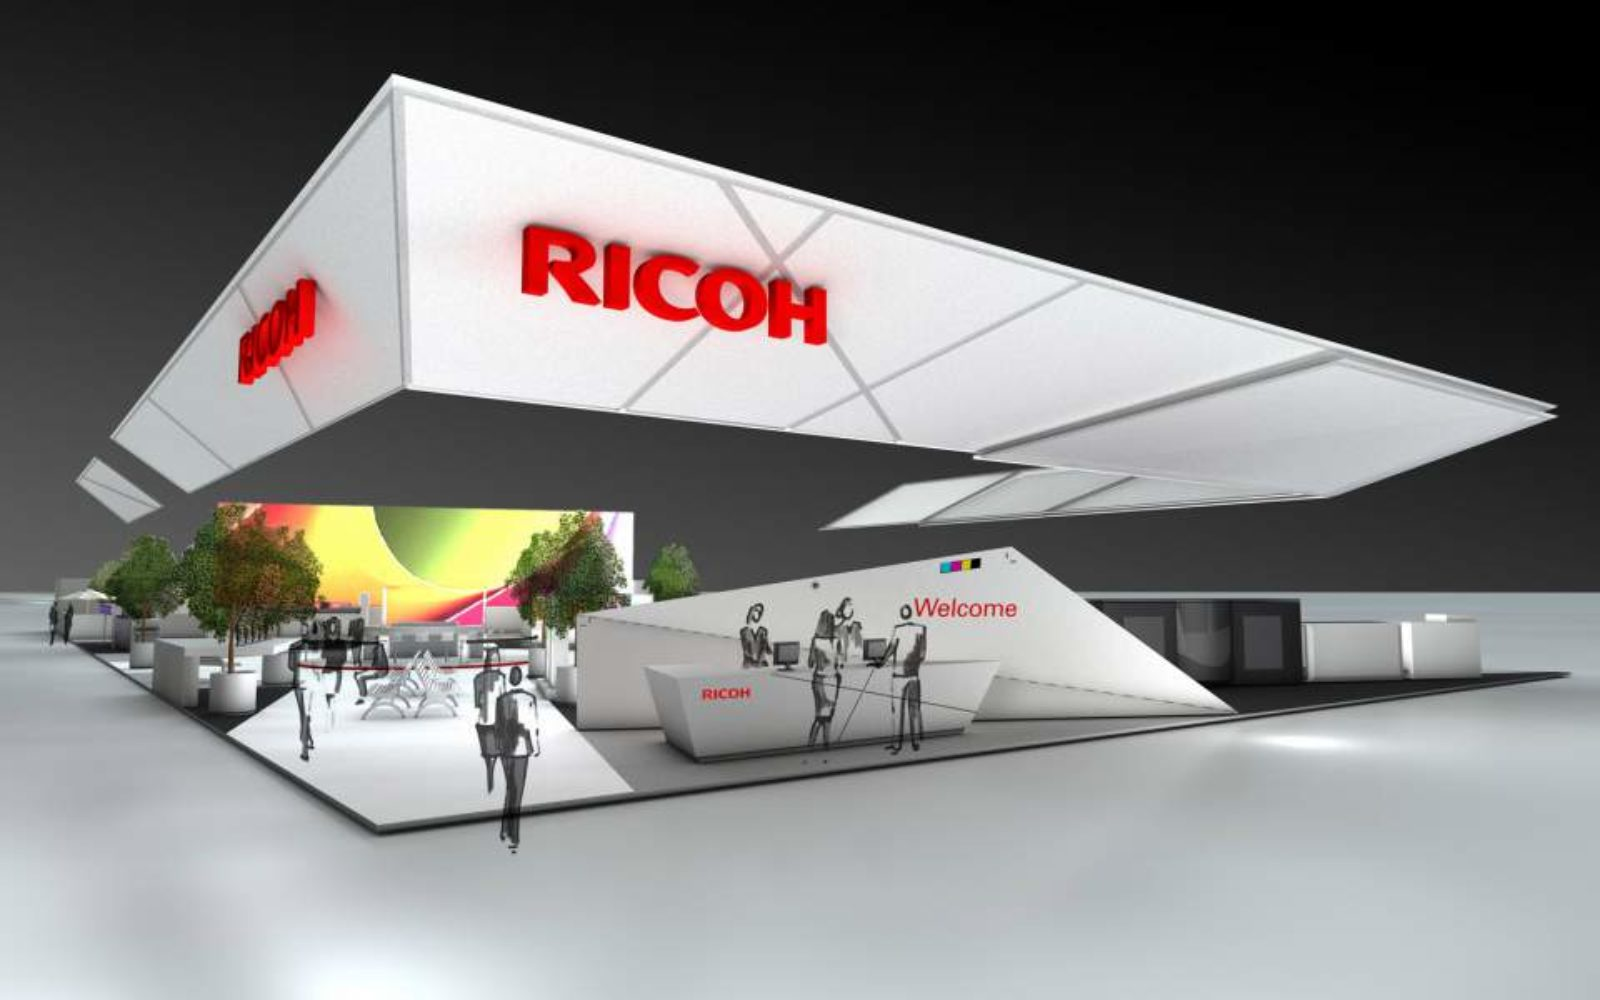 Ricoh working with Farbenpunkt to reduce CO2 emissions